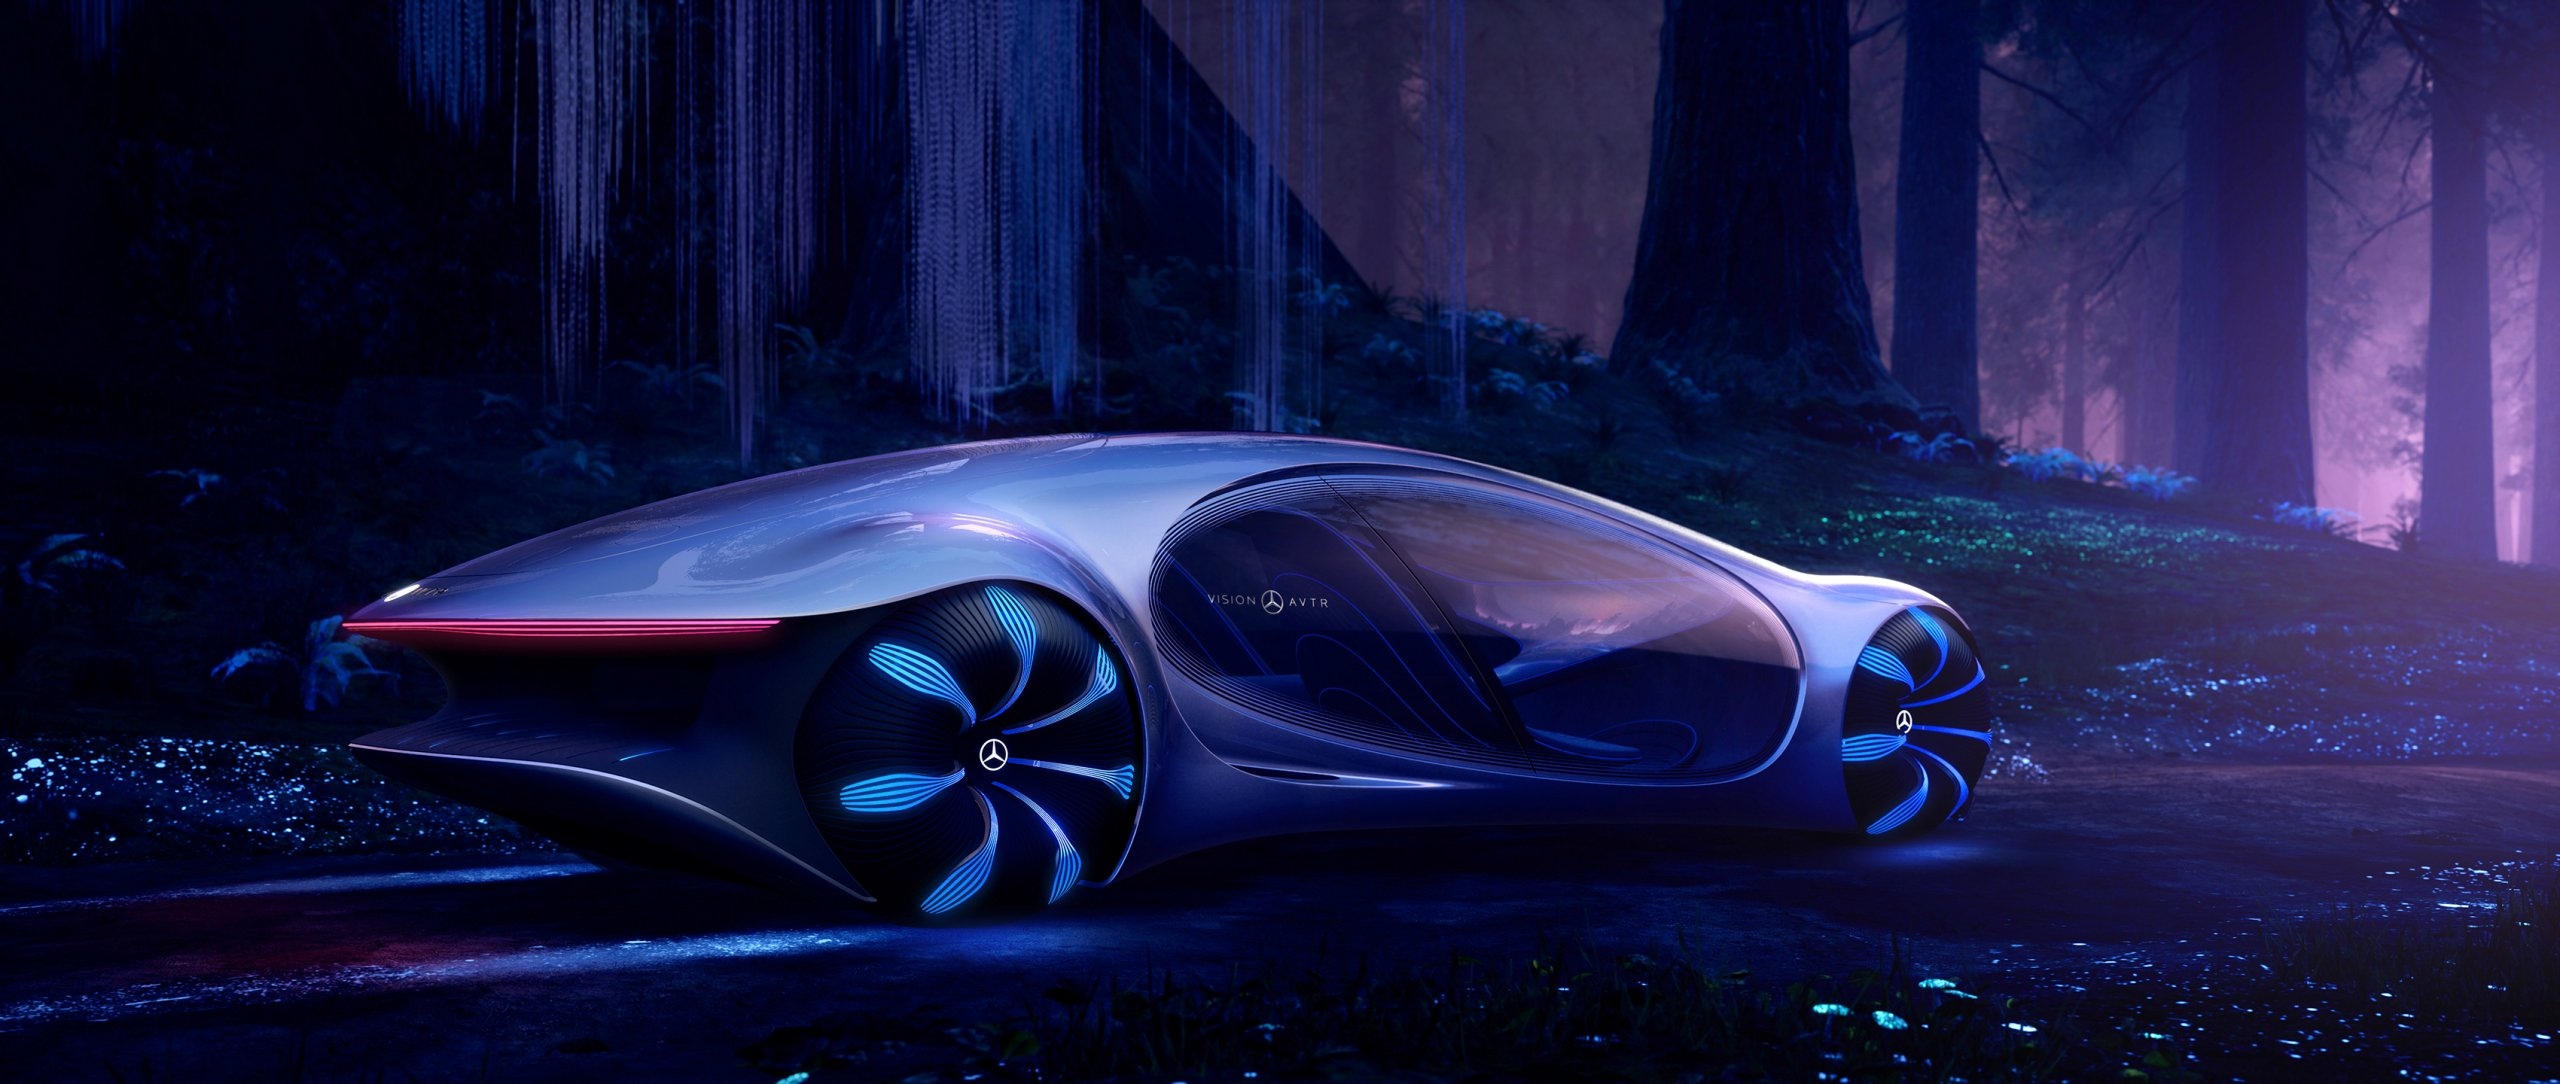 Side view of the Mercedes-Benz VISION AVTR in a forest – inspired by AVATAR